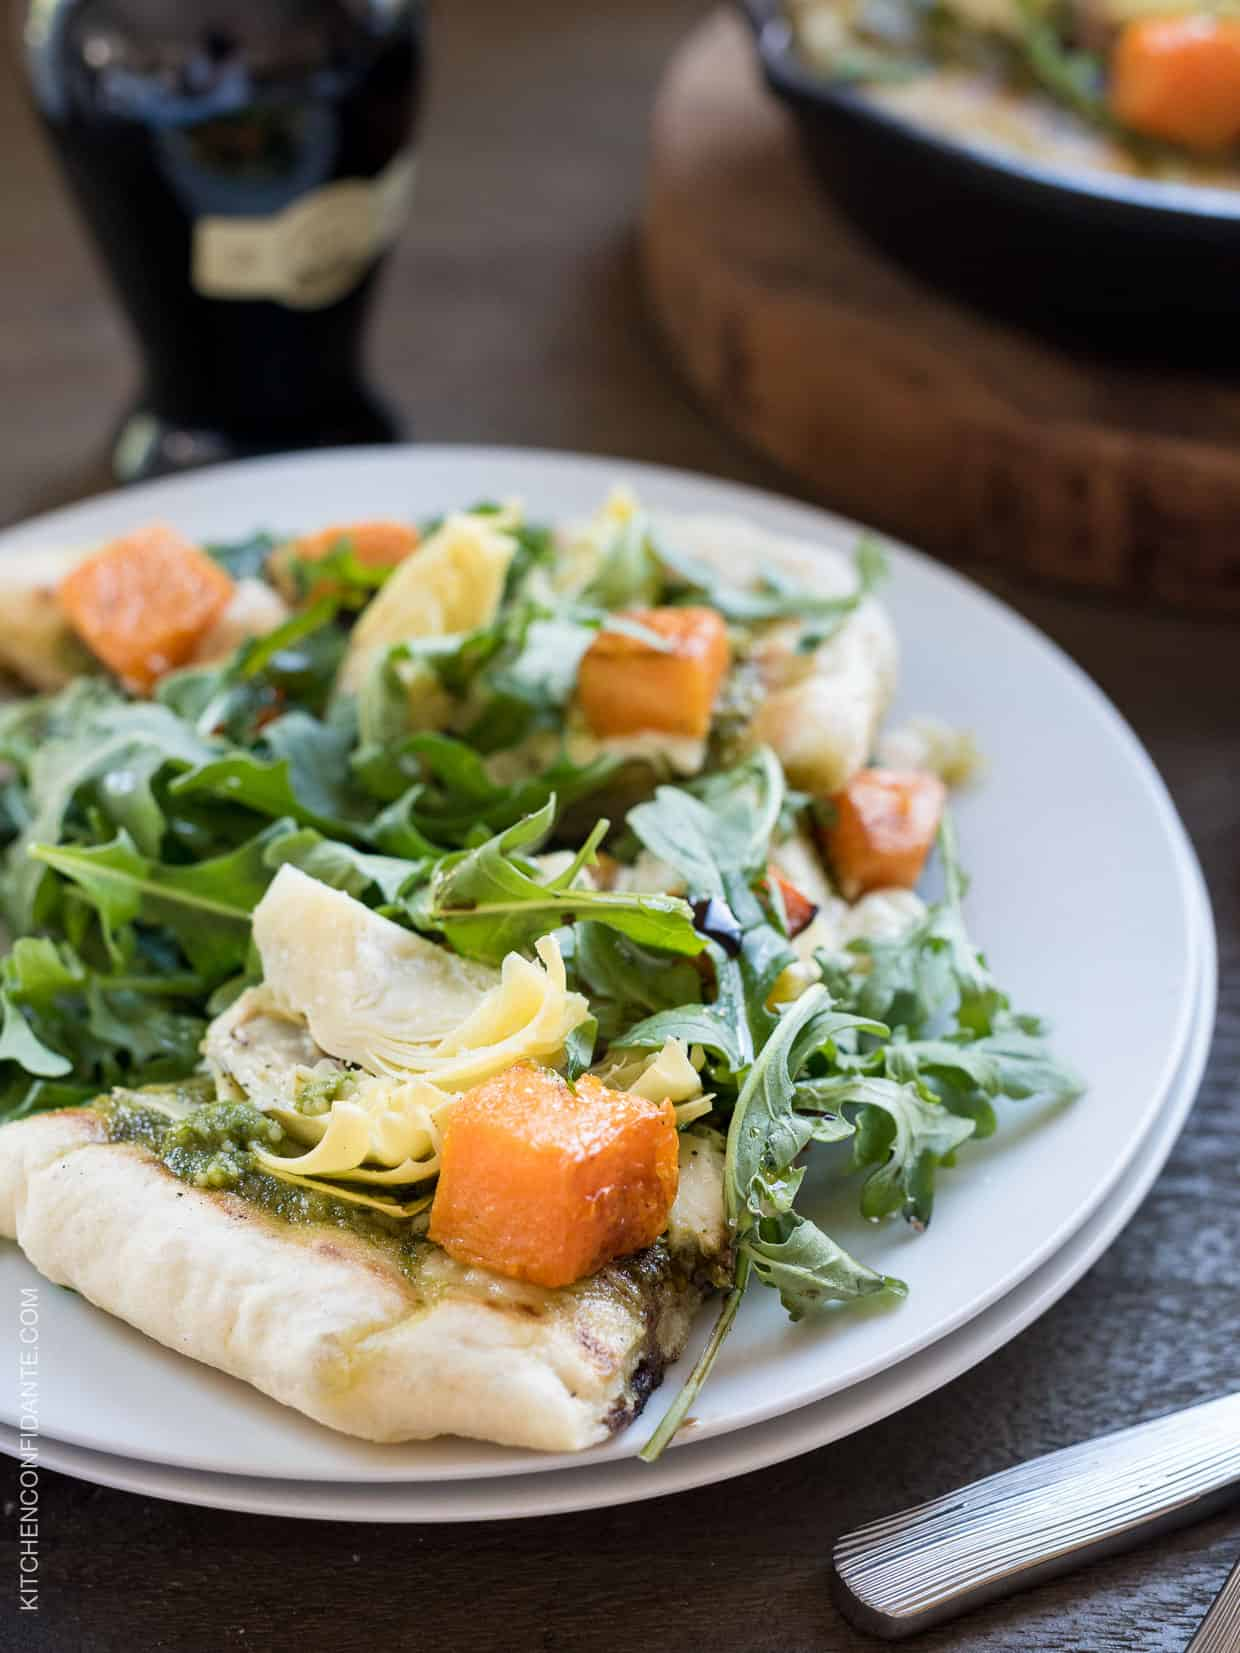 Skillet Pesto Flatbread with Goat Cheese, Artichokes and Roasted Butternut Squash - make it in minutes and without firing up the oven!